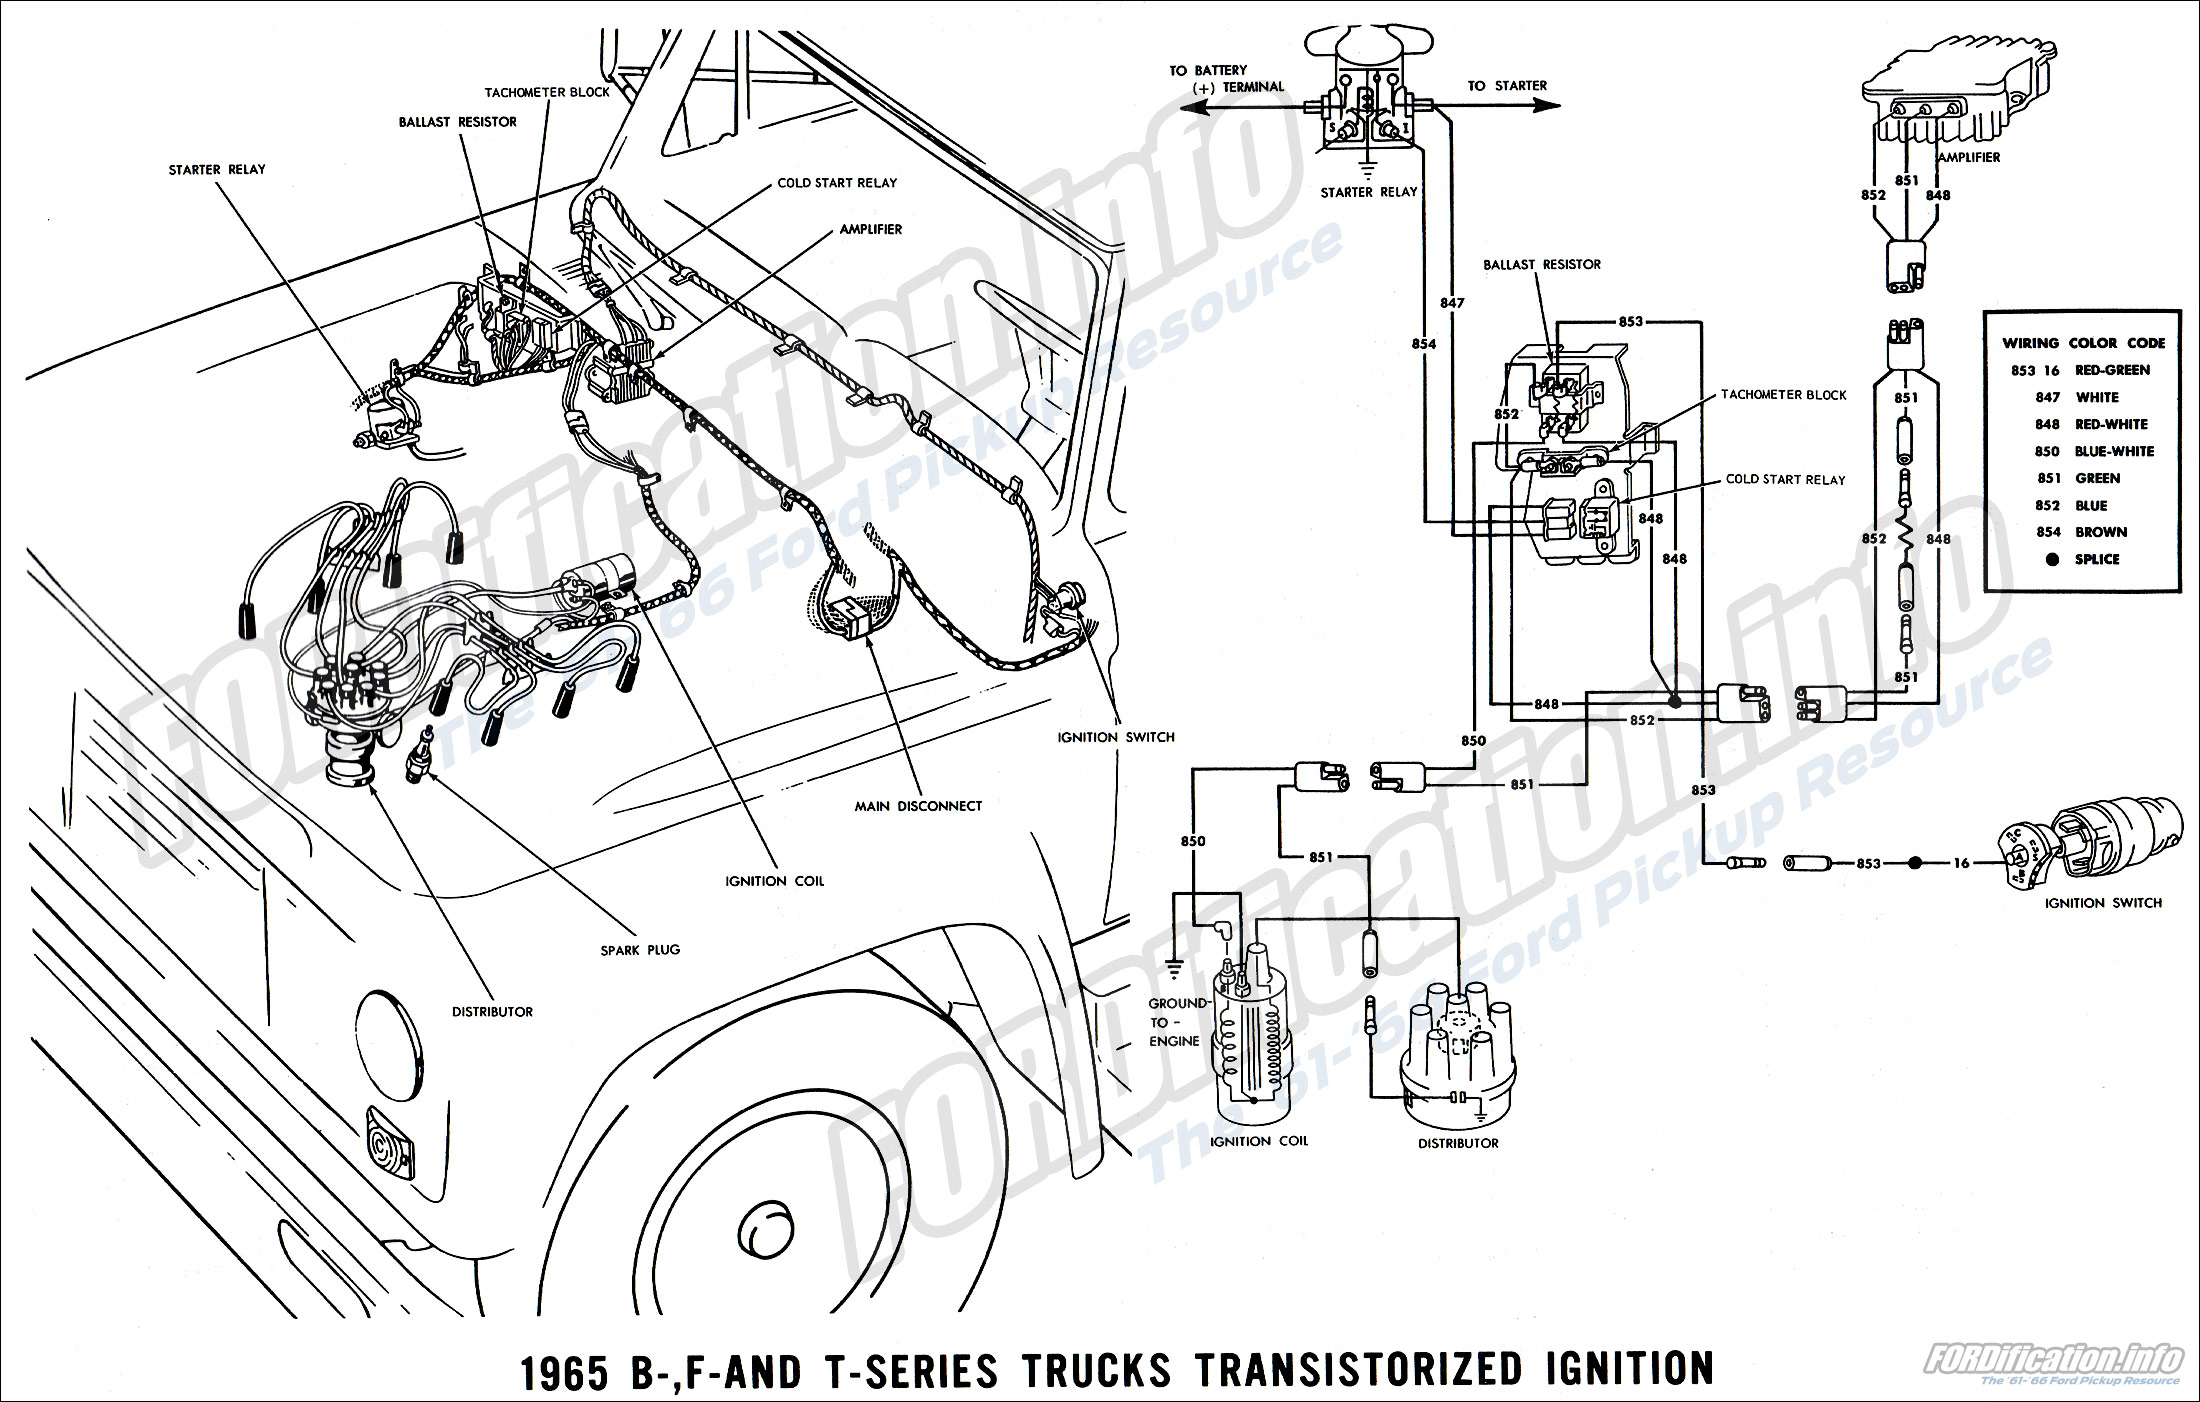 Ford Truck Coil Wiring Diagram 1965 Detailed Diagrams Rh Standrewsthorntonheath Co Uk To Msd